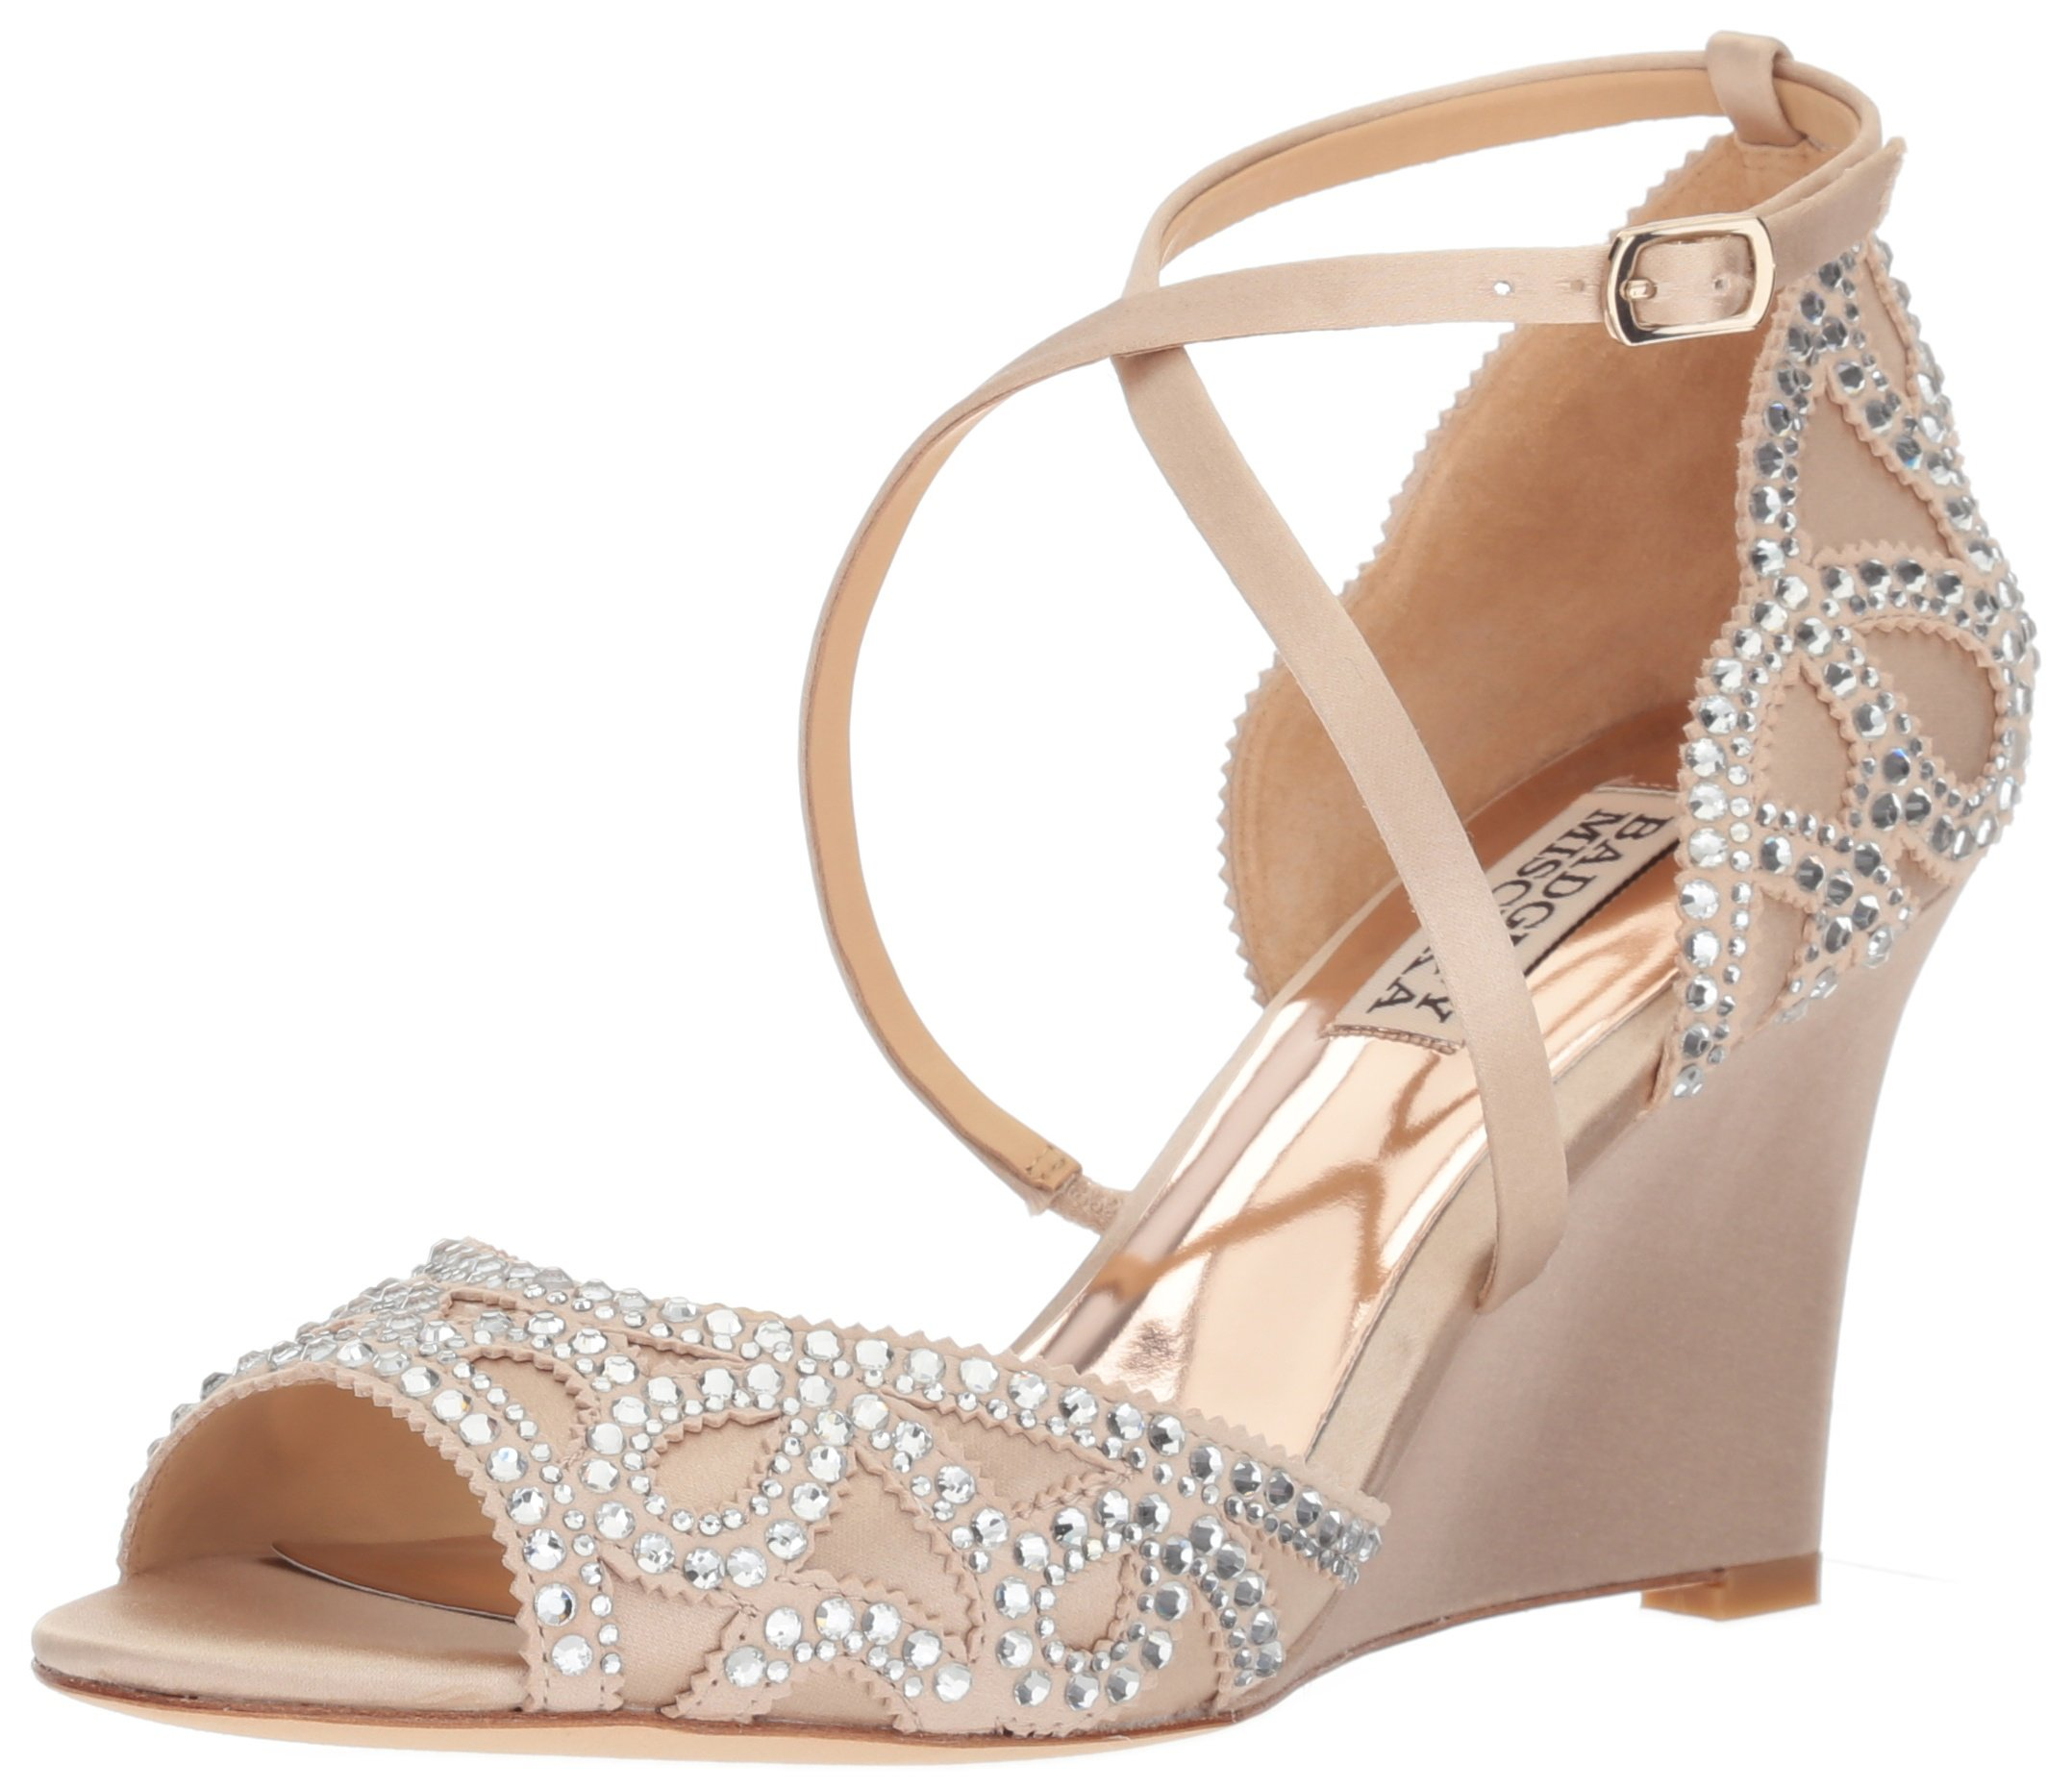 Badgley Mischka Women's Winter Wedge Sandal, Nude, 9.5 M US